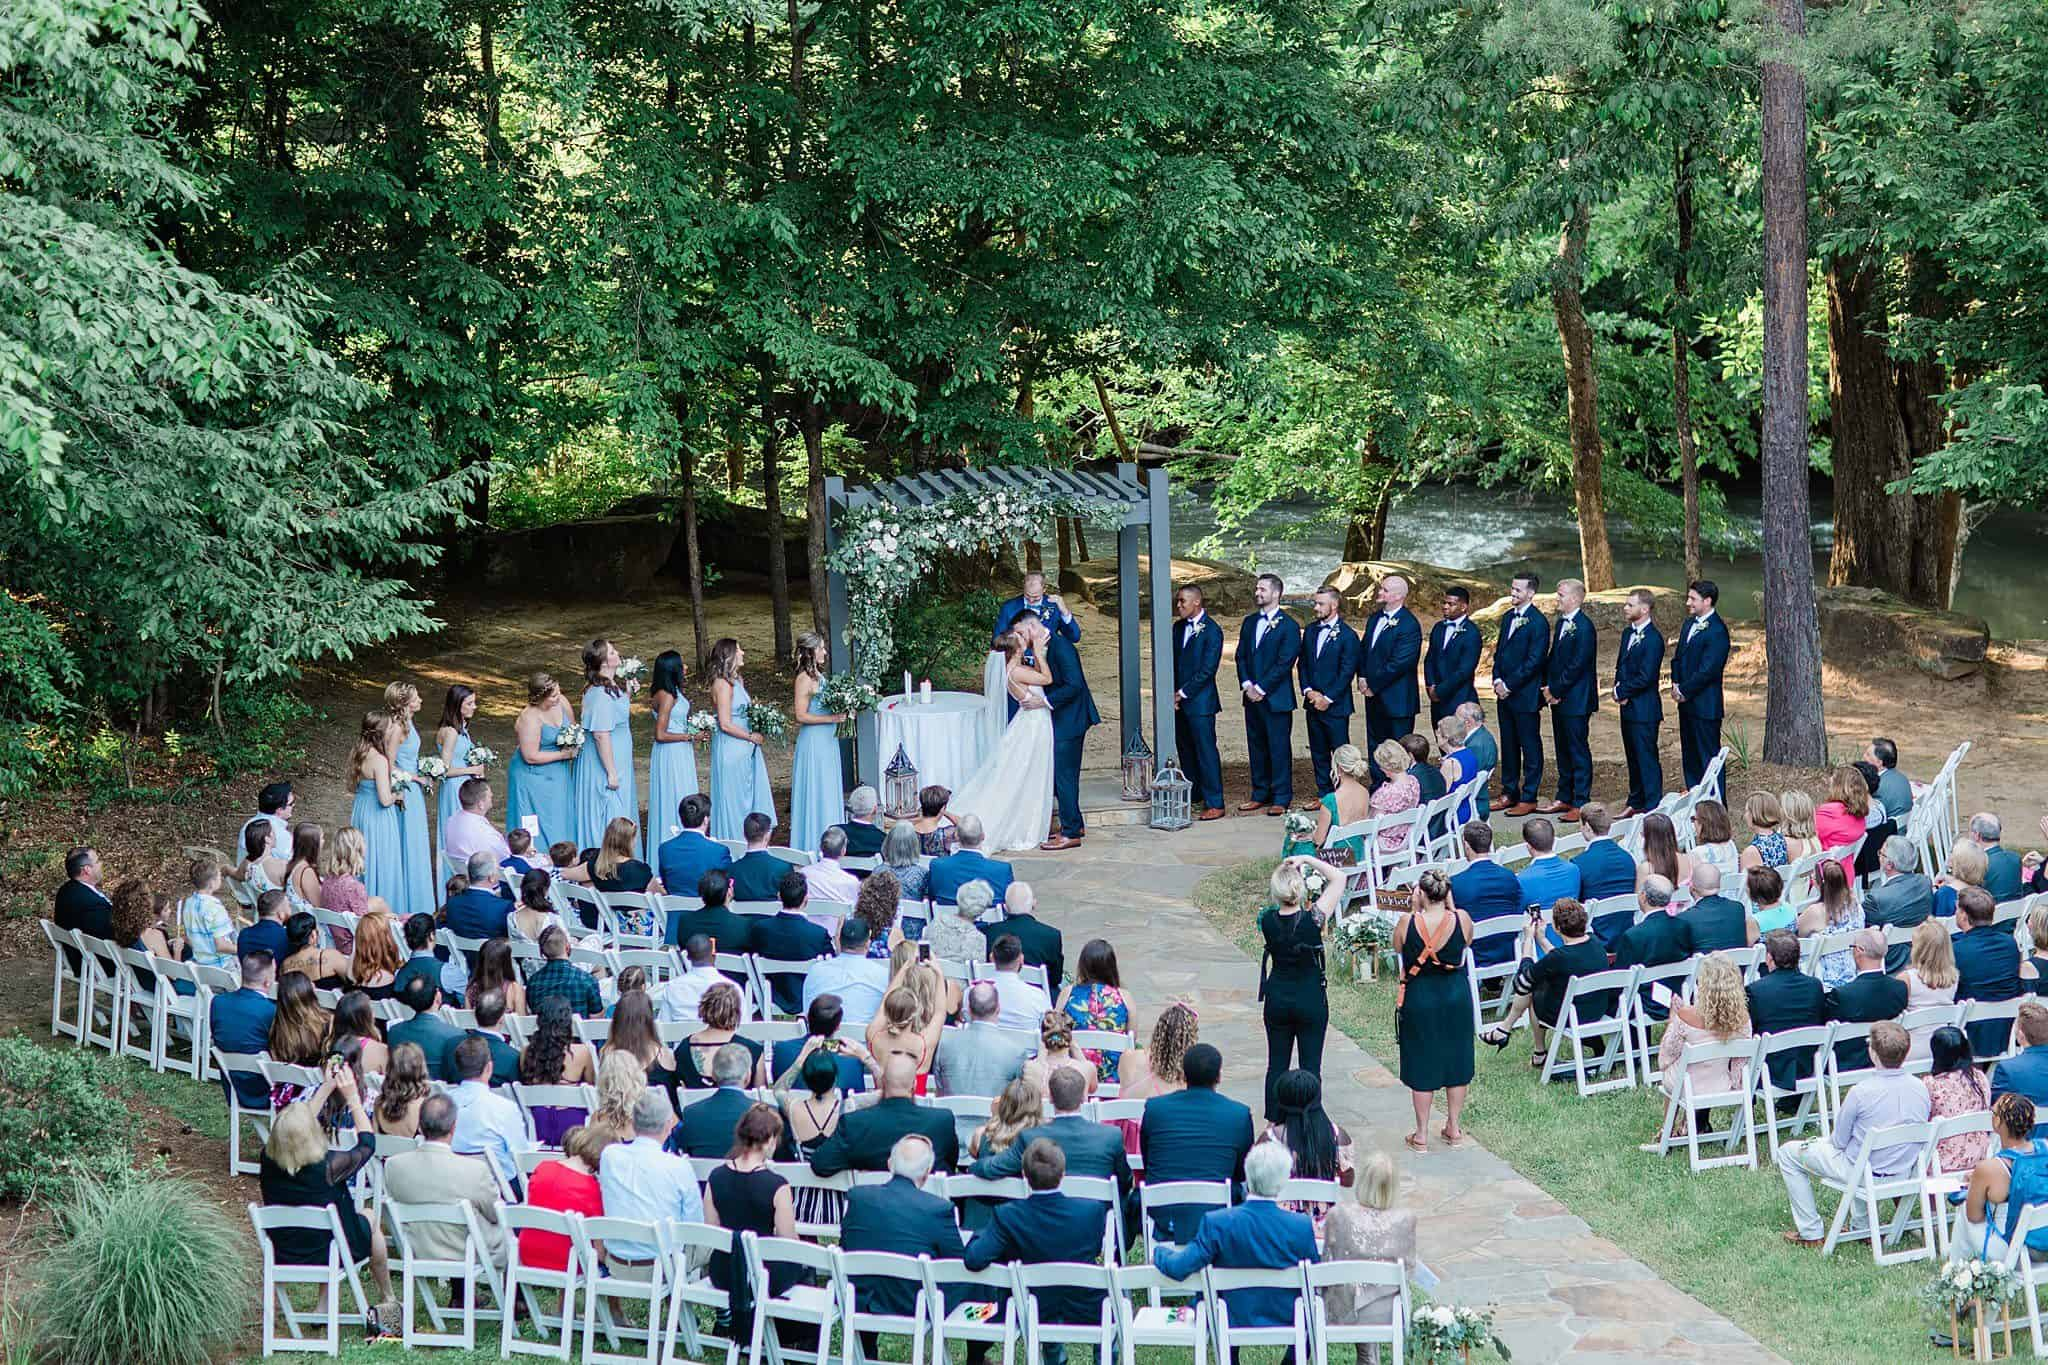 Bride and Groom kissing at altar at end of ceremony under arbor next to river